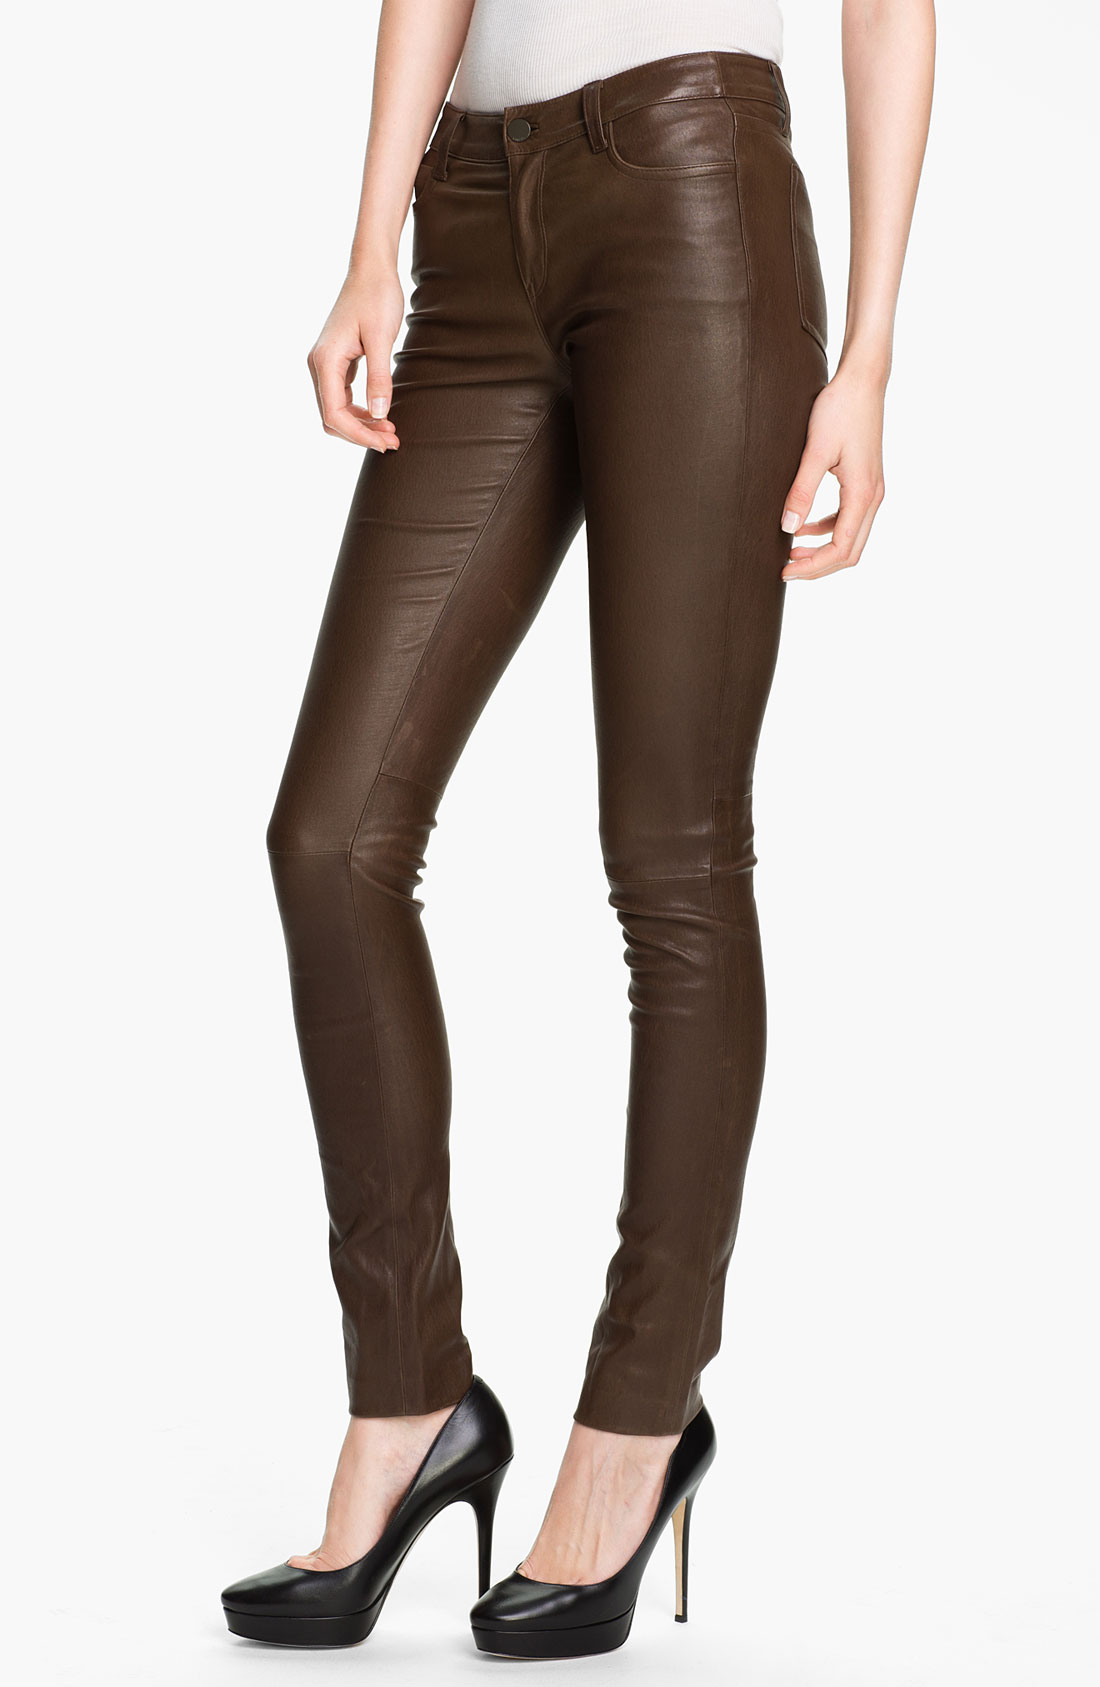 Feb 03, · Hi ladies, I bought a pair of J Brand leather pants a couple of months ago and wore them for the first time last night. I spent three hours in them, sitting down in a restaurant and when I stood up they felt really slack everywhere.